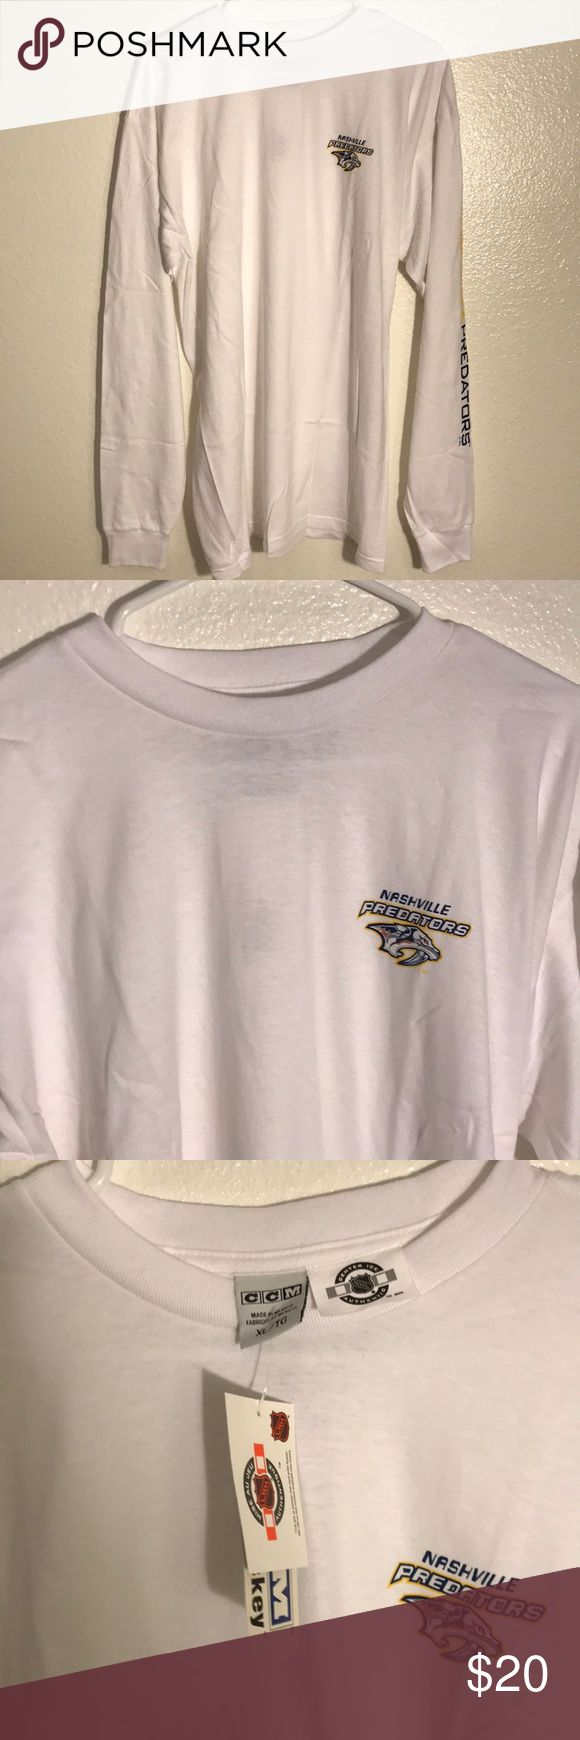 CCM Nashville Predators Long Sleeve Size XL CCM Nashville Predators Long Sleeve Size XL, Brand New, Never Worn or Used, 🎄WILL SHIP IN ONE DAY🎄All bundles of 2 or more receive 20% off. Closet full of new, used and vintage Vans, Skate and surf companies, jewelry, phone cases, shoes and more. CCM Shirts Tees - Long Sleeve